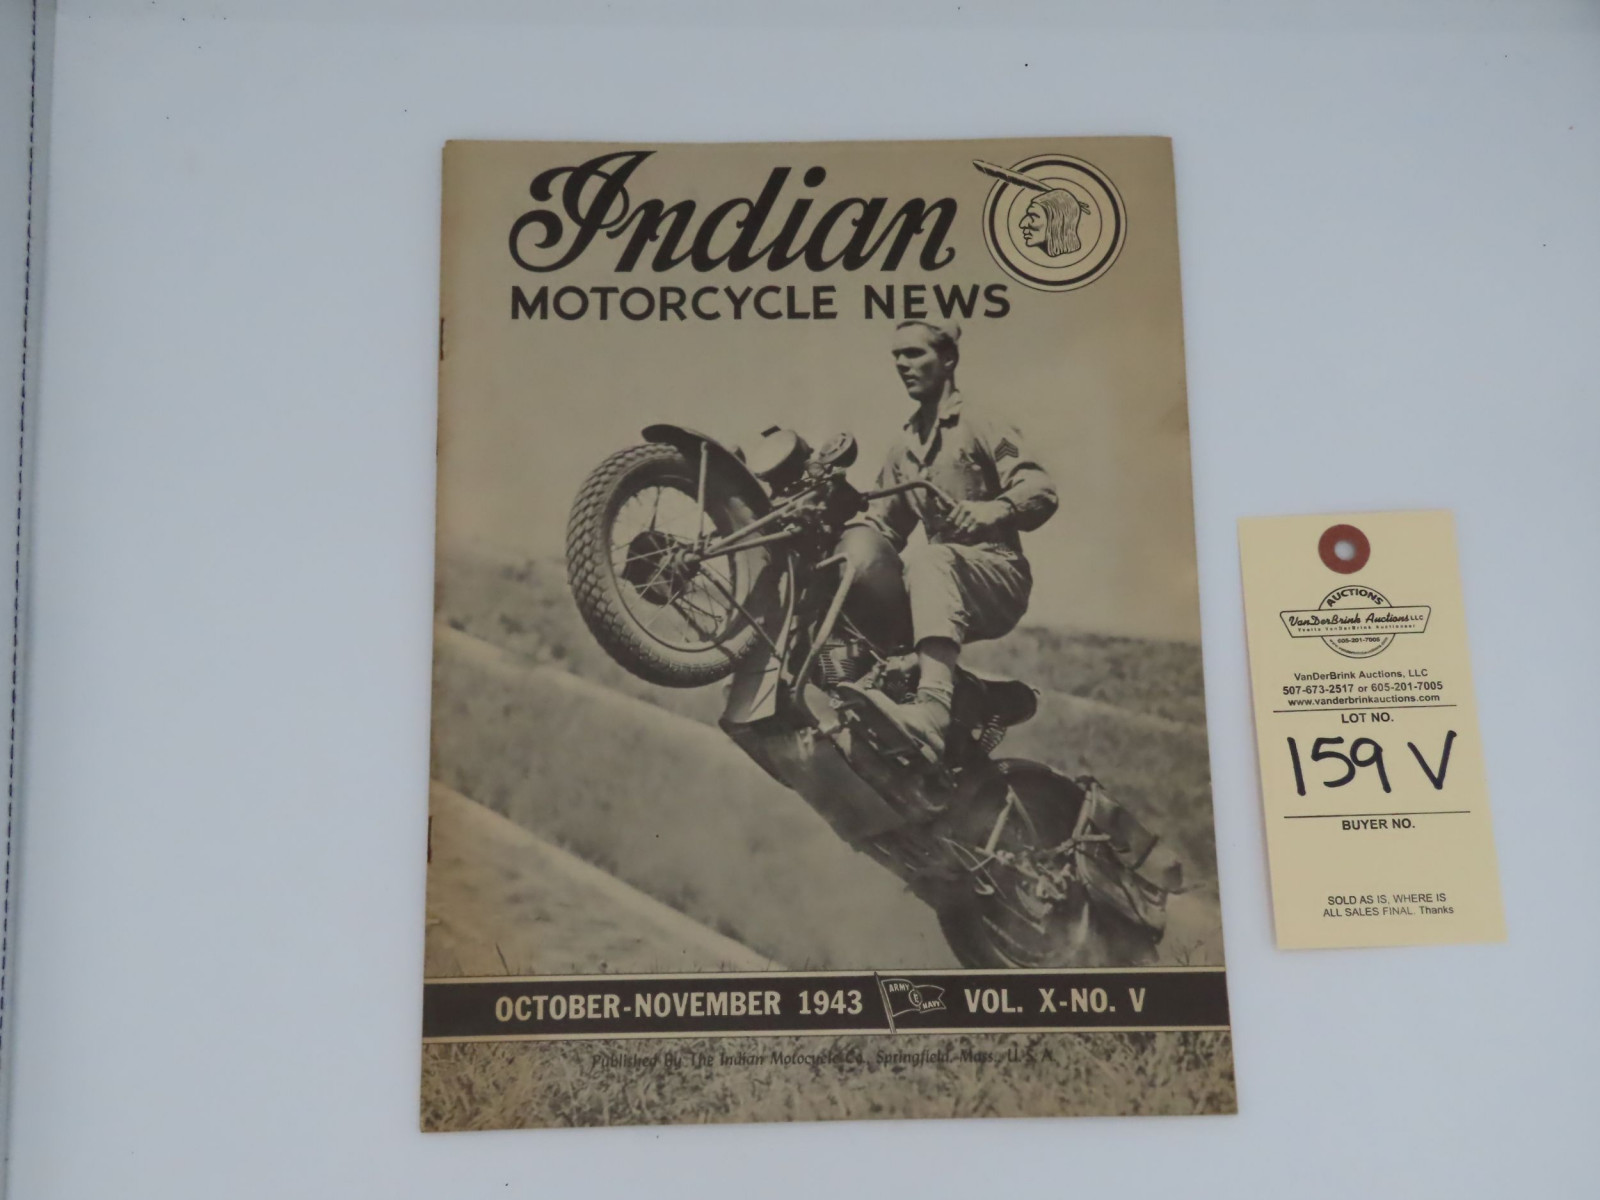 Indian Motorcycle News - 1943 - Image 7